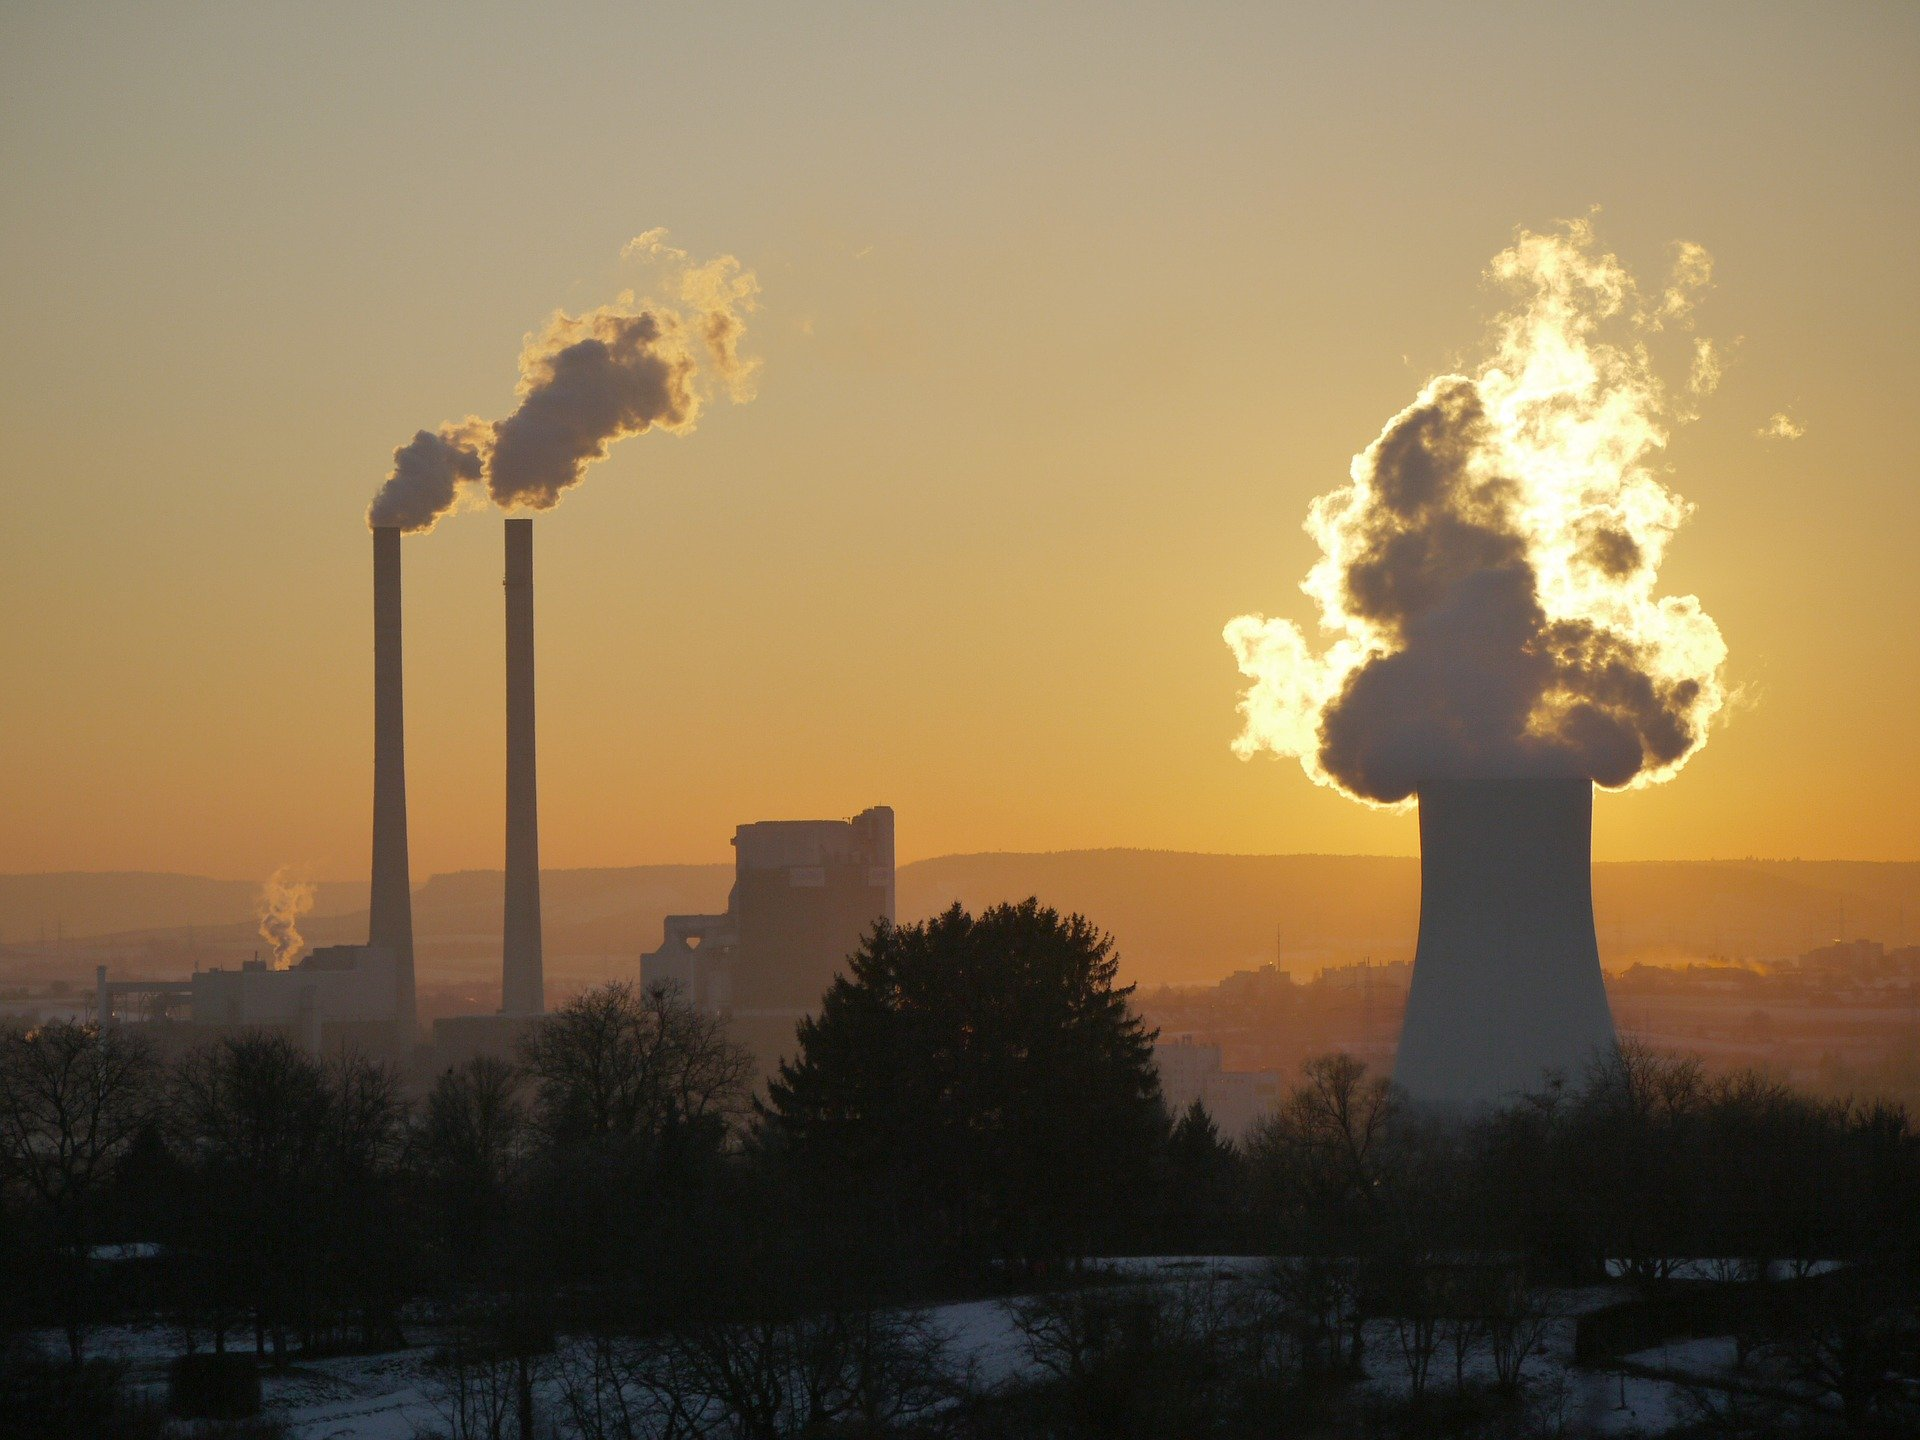 Controversy before the COP26: The Dangers of Coal Mining